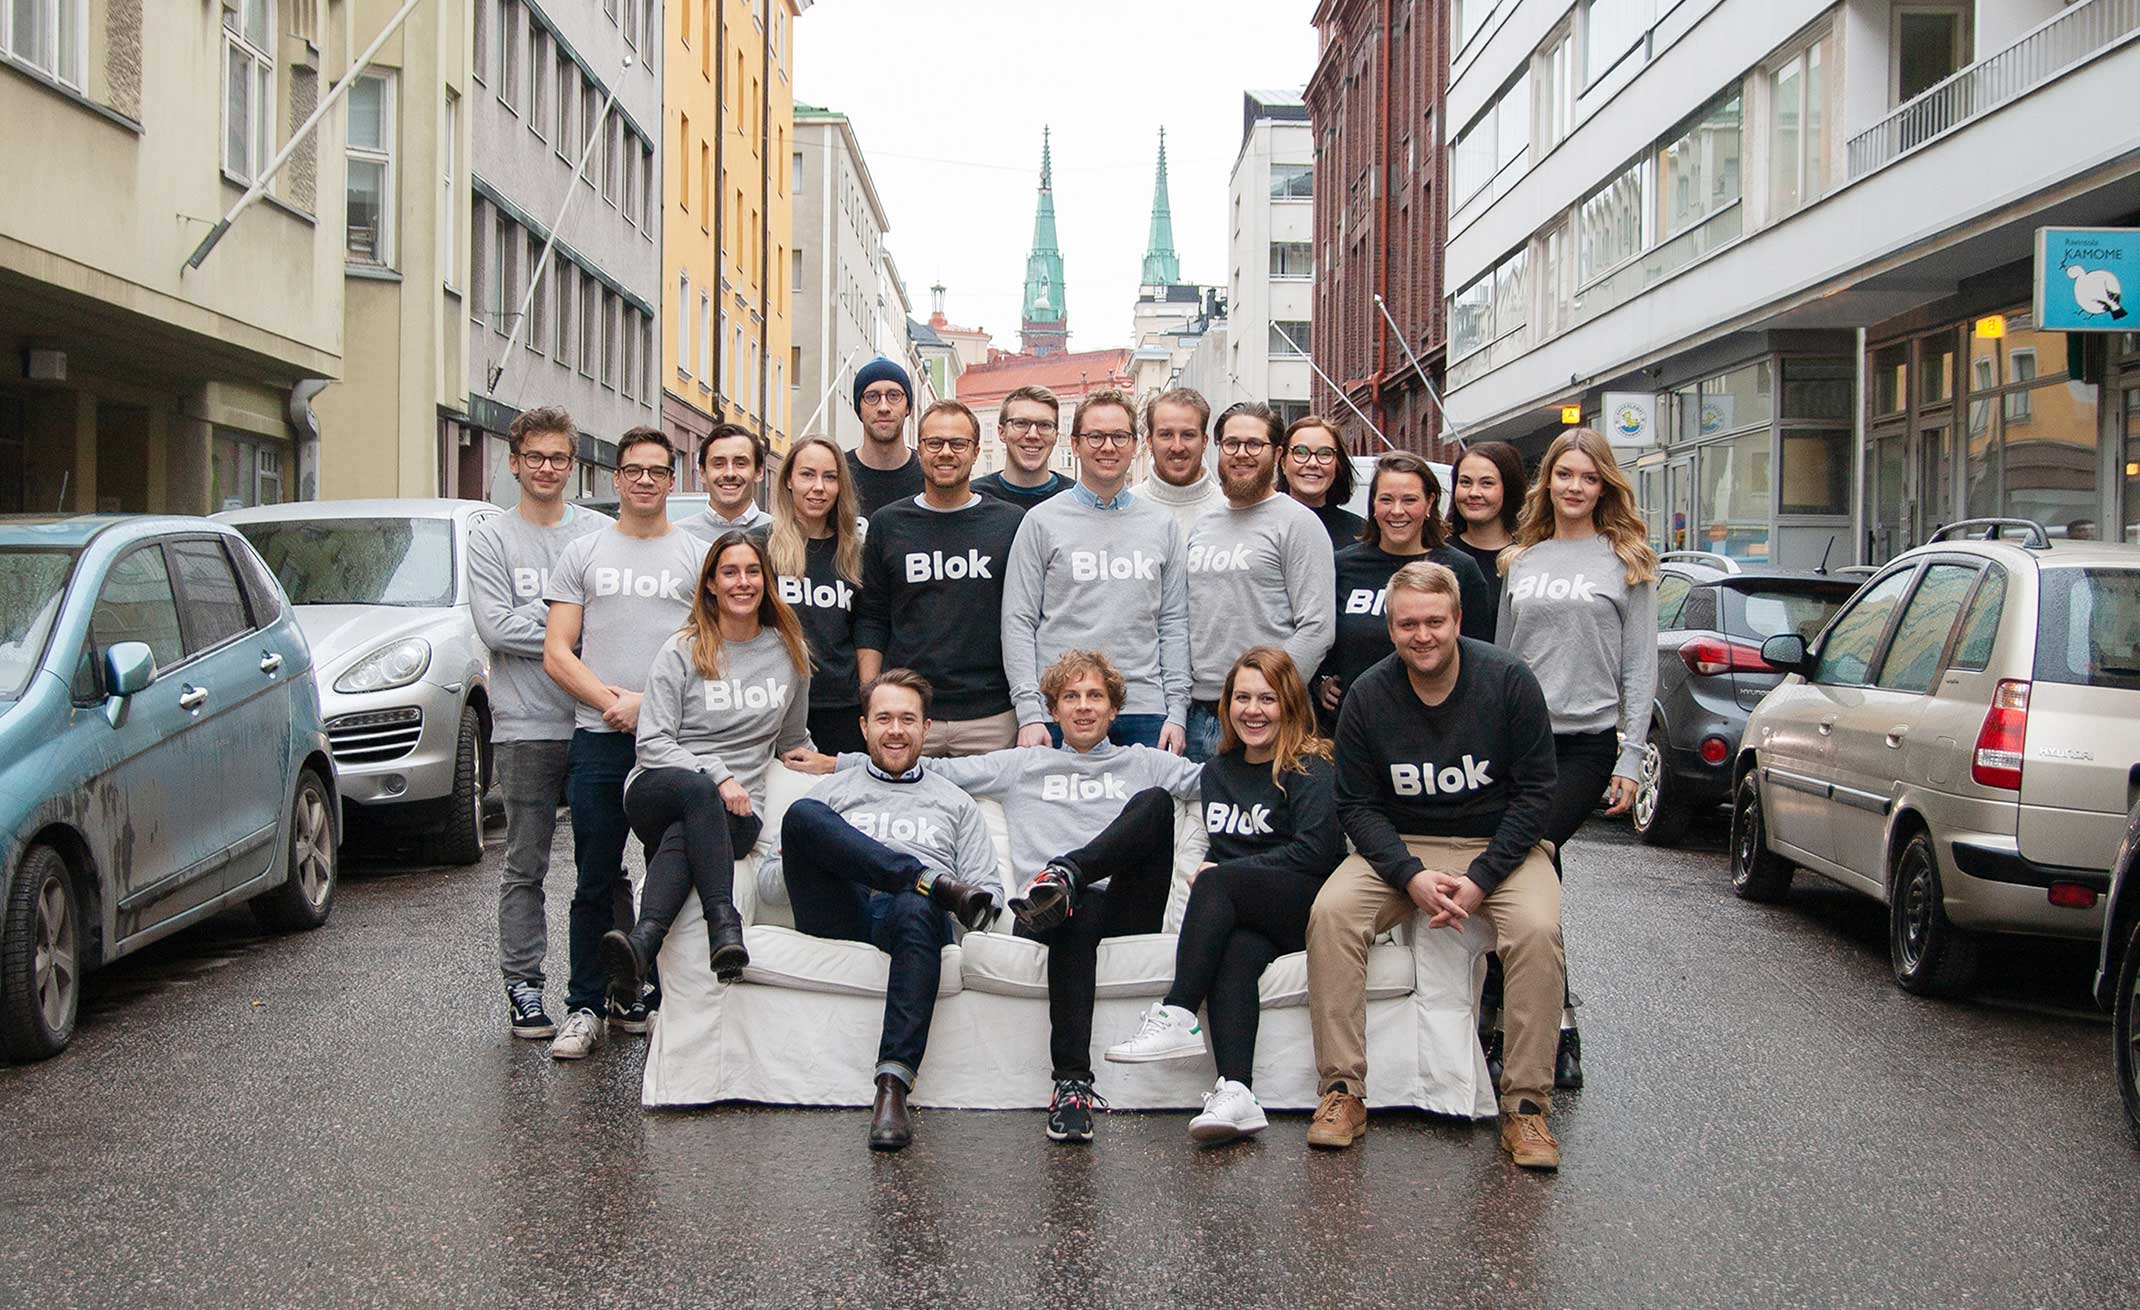 Blok Raises €3.5m – Will Expand to 20 European Countries by 2025